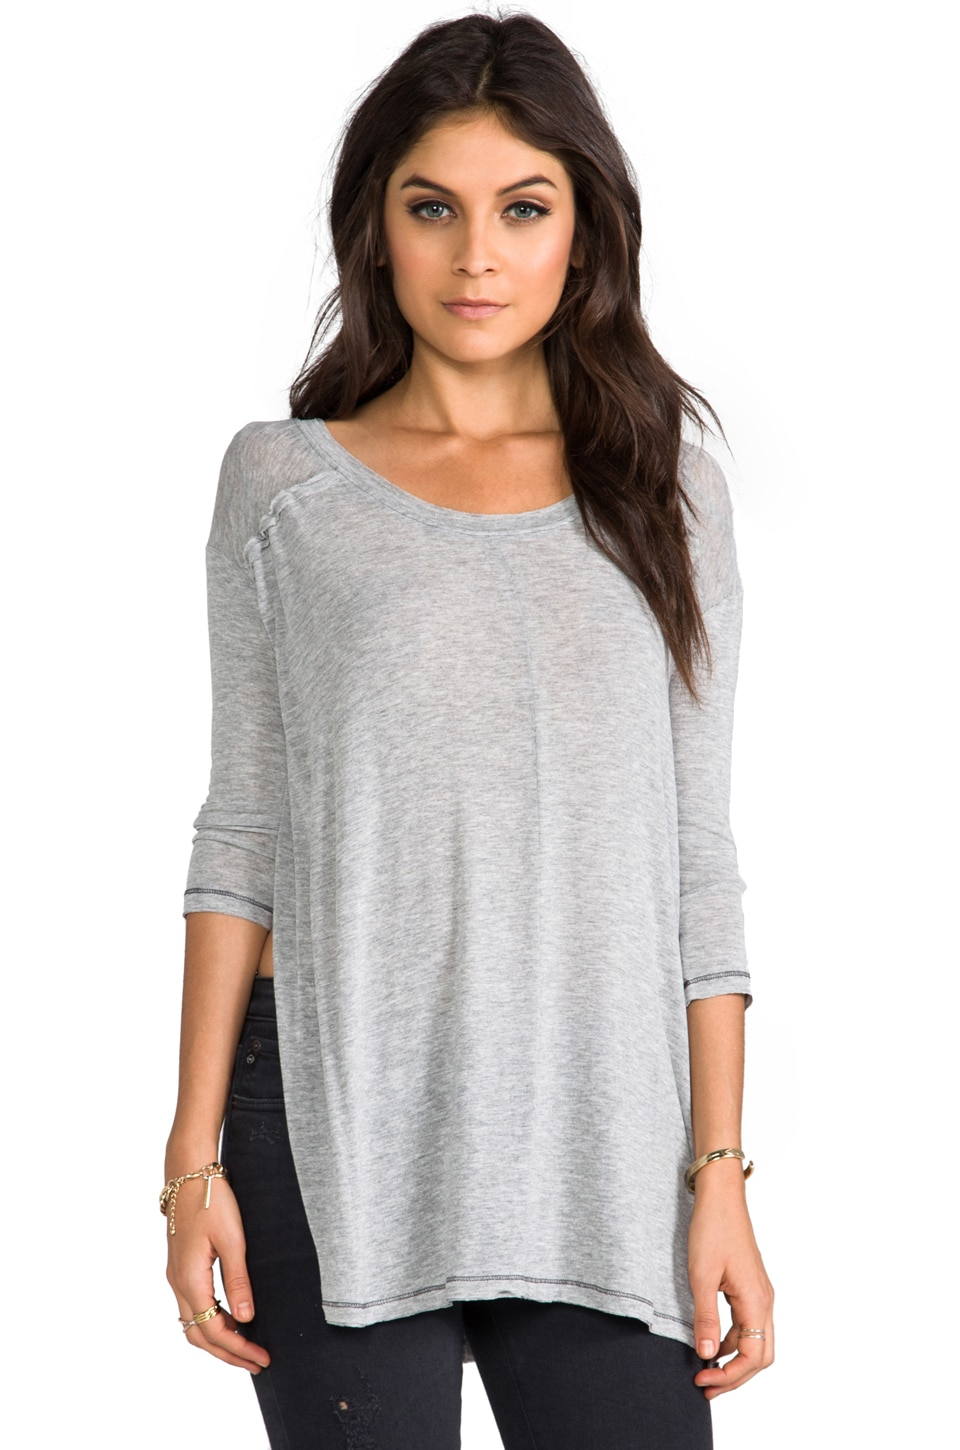 Free People Saturday Night Top in Grey Heather